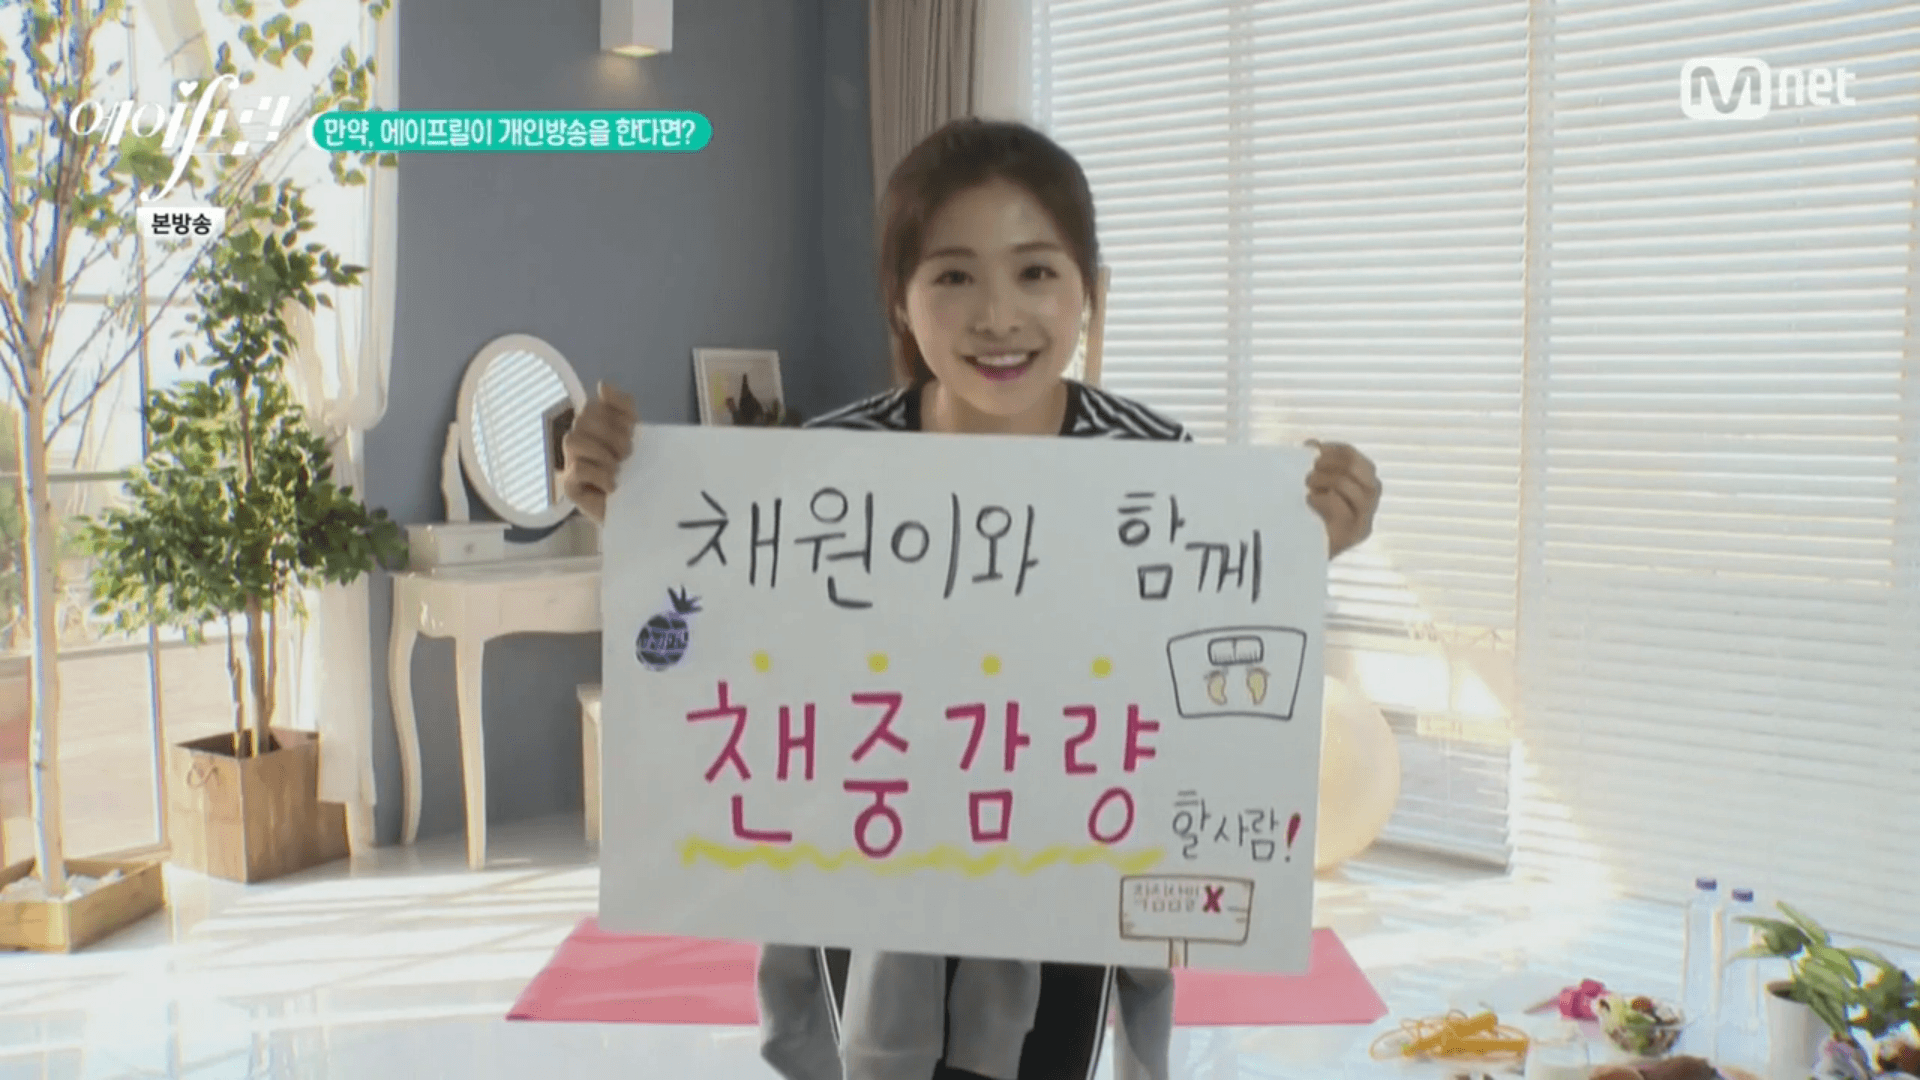 APRILs Chaewon revealed her secret exercise routine that helped her lose 2kg in 2 days